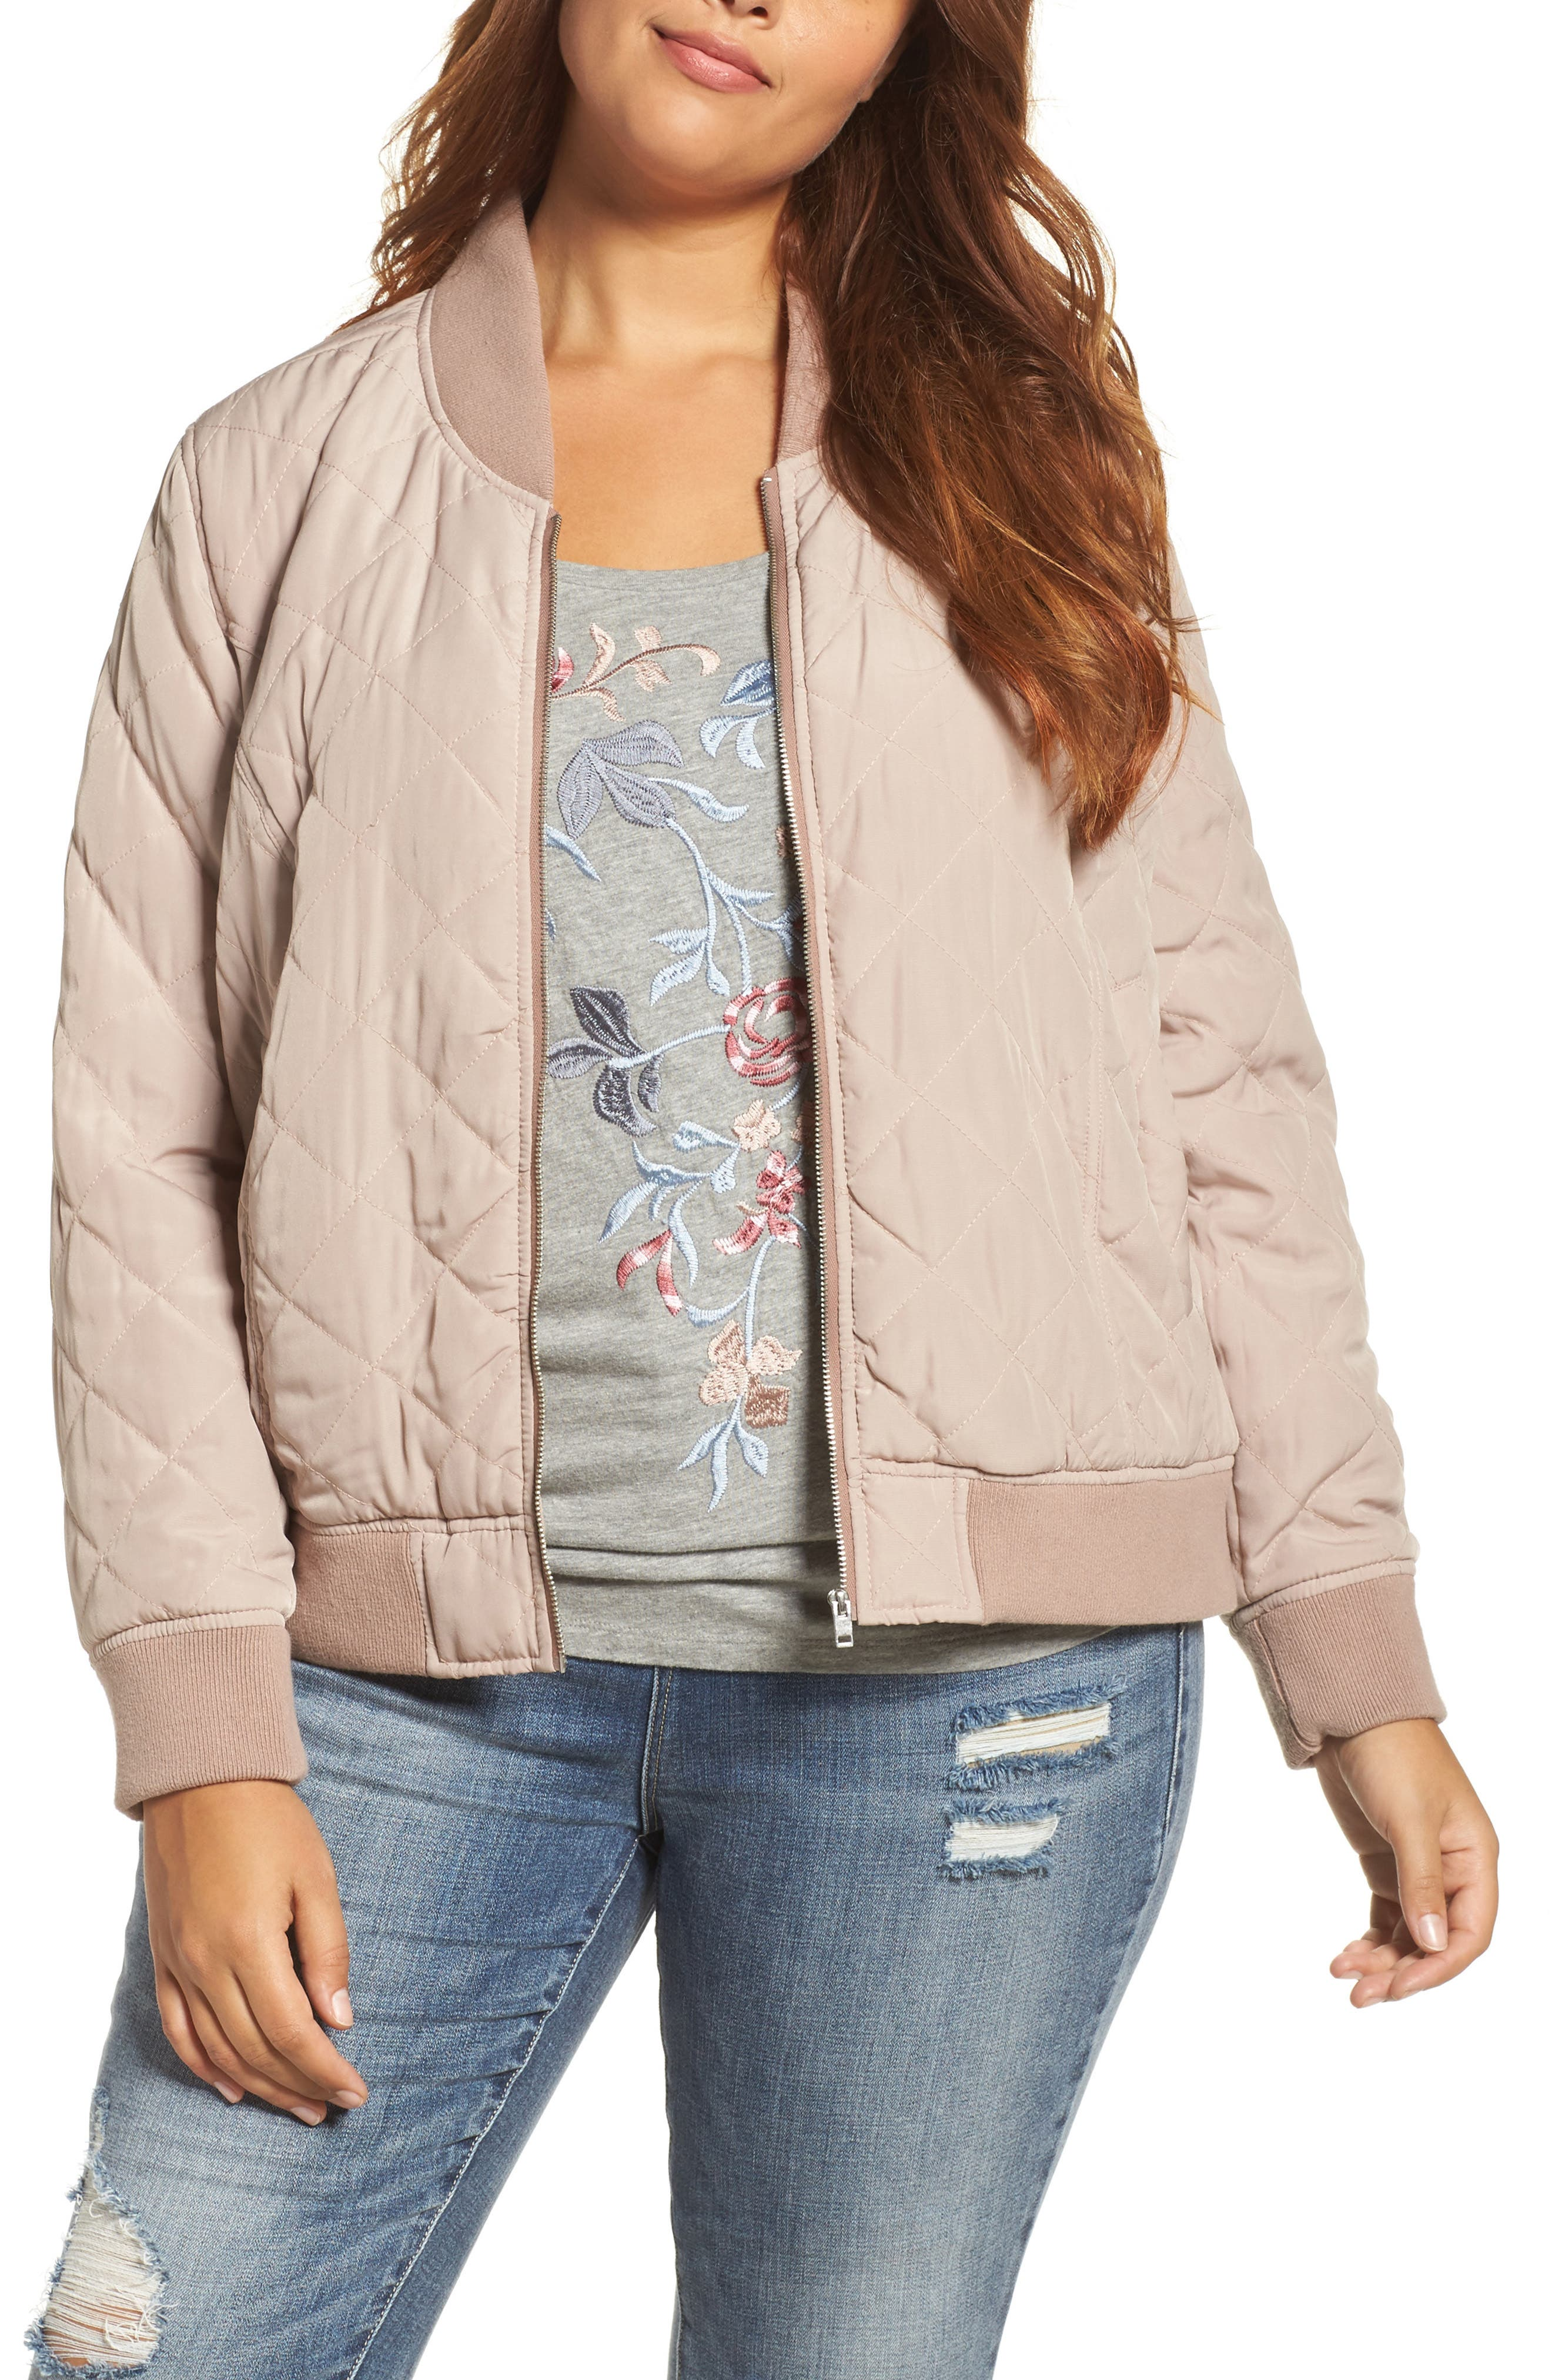 Alternate Image 1 Selected - Lucky Brand Quilted Bomber Jacket (Plus Size)